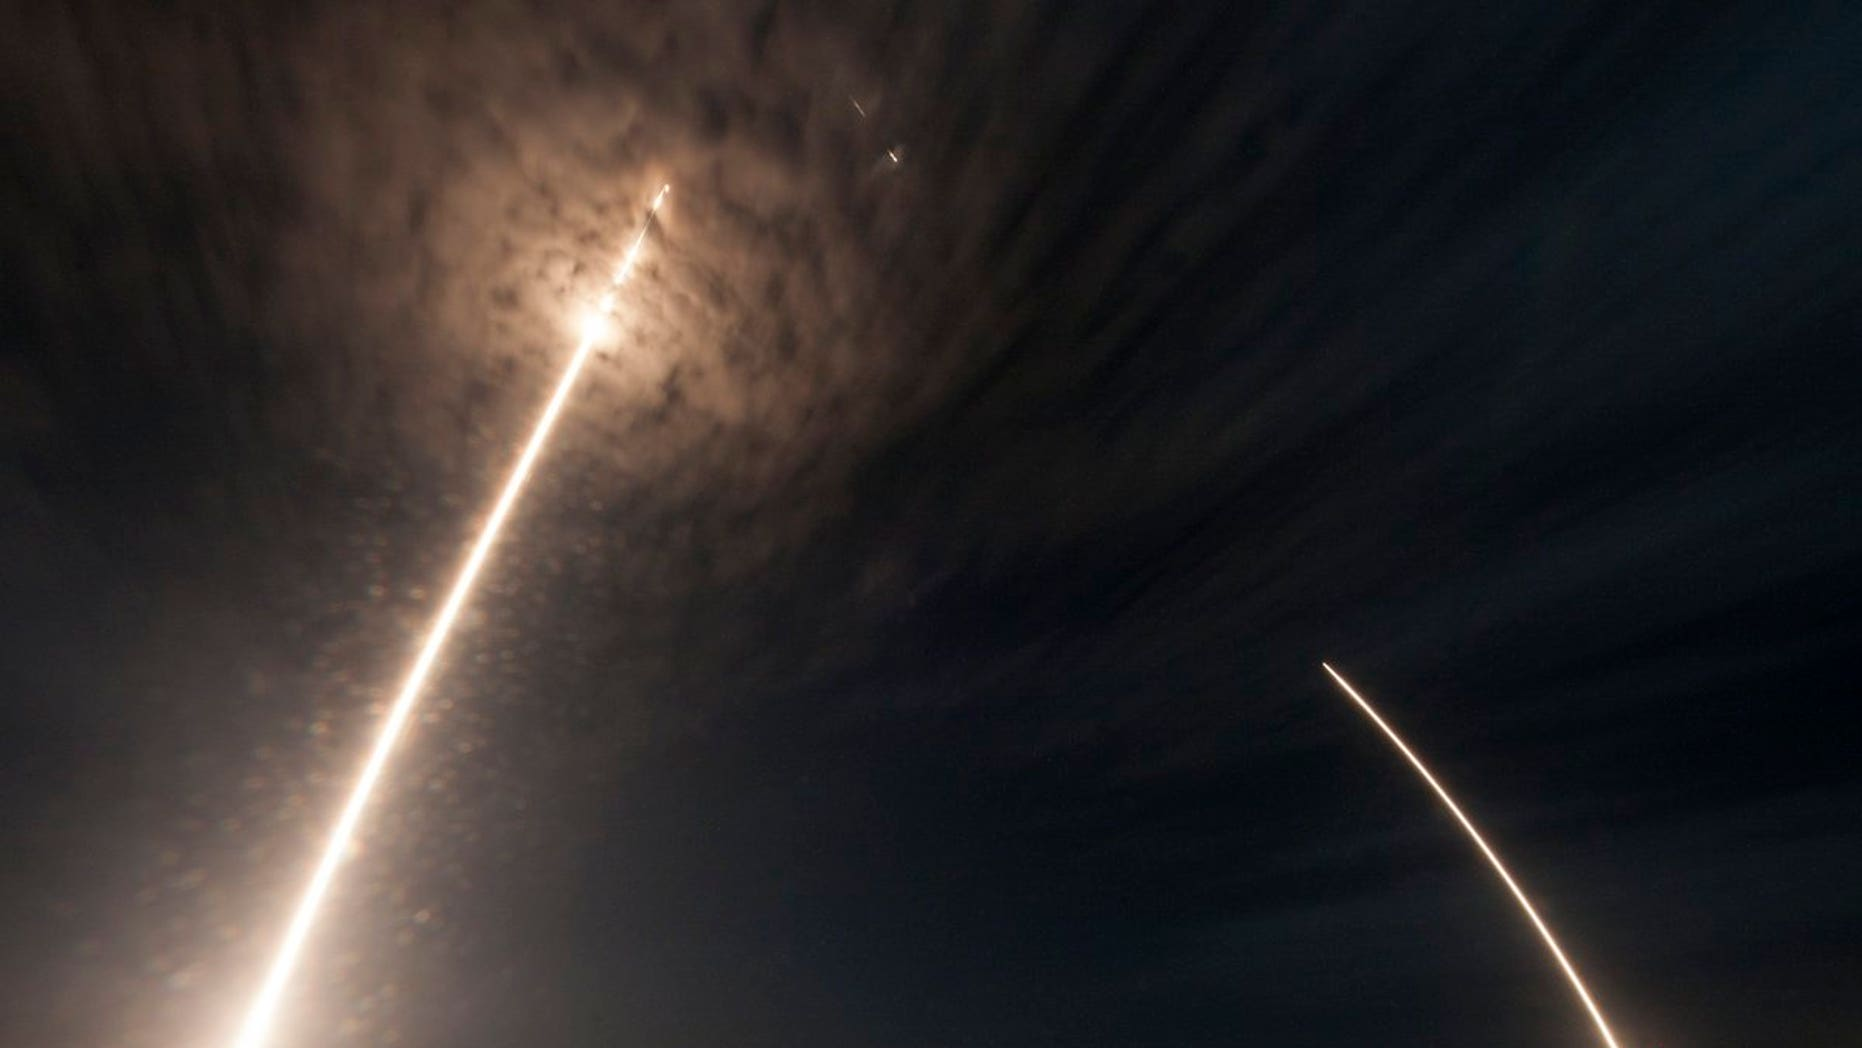 Composite image showing SpaceX's Falcon 9 rocket lifting off, and then landing at, Florida's Cape Canaveral Air Force Station on July 18, 2016.